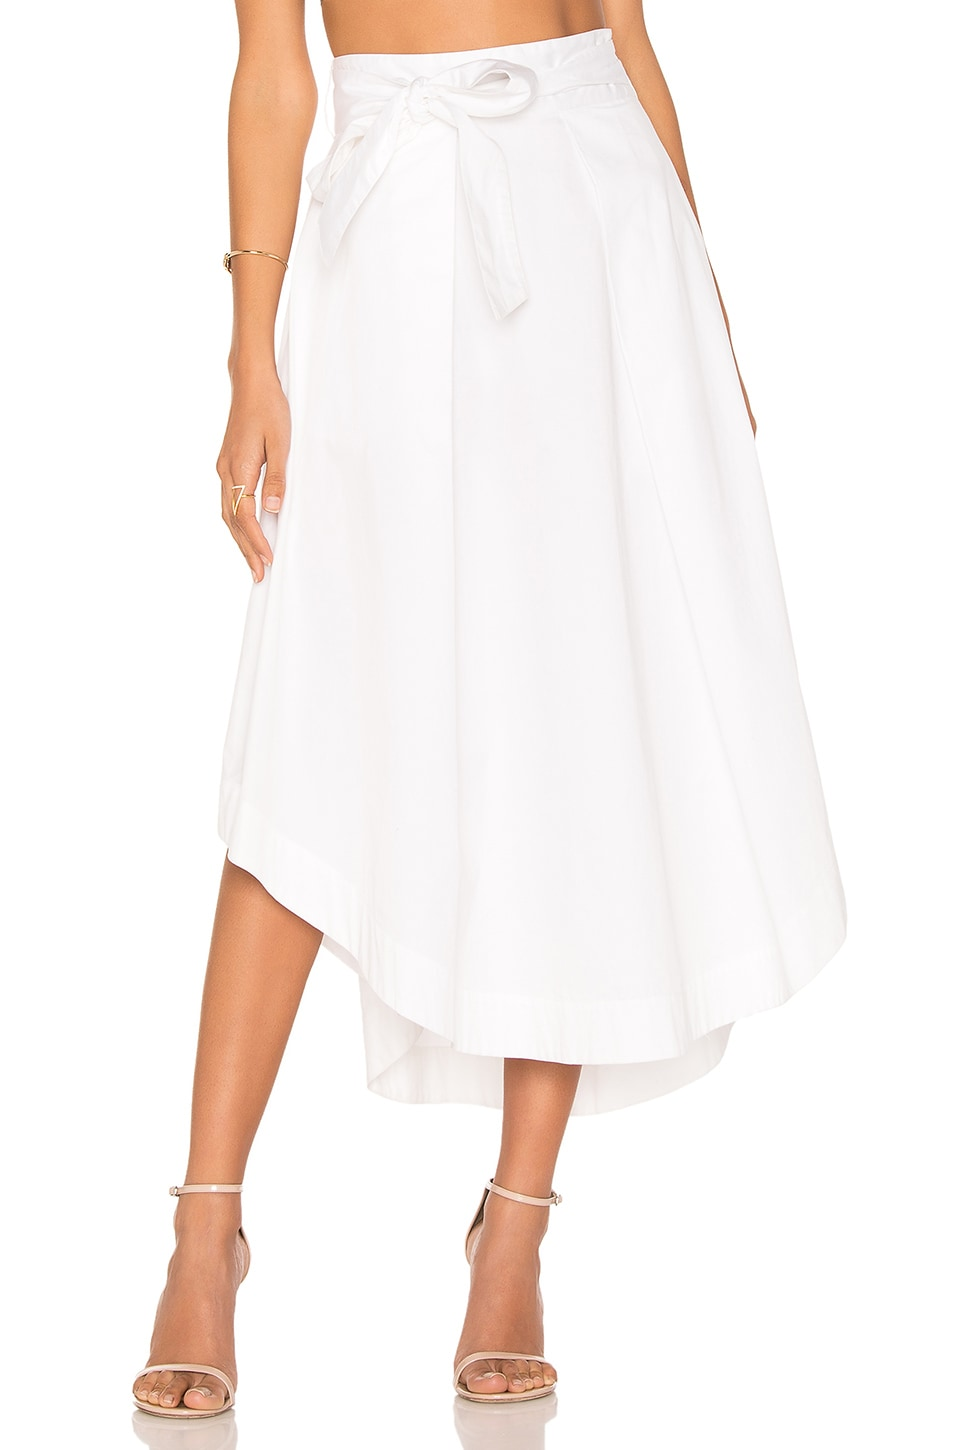 KENDALL + KYLIE Swing Skirt in Bright White